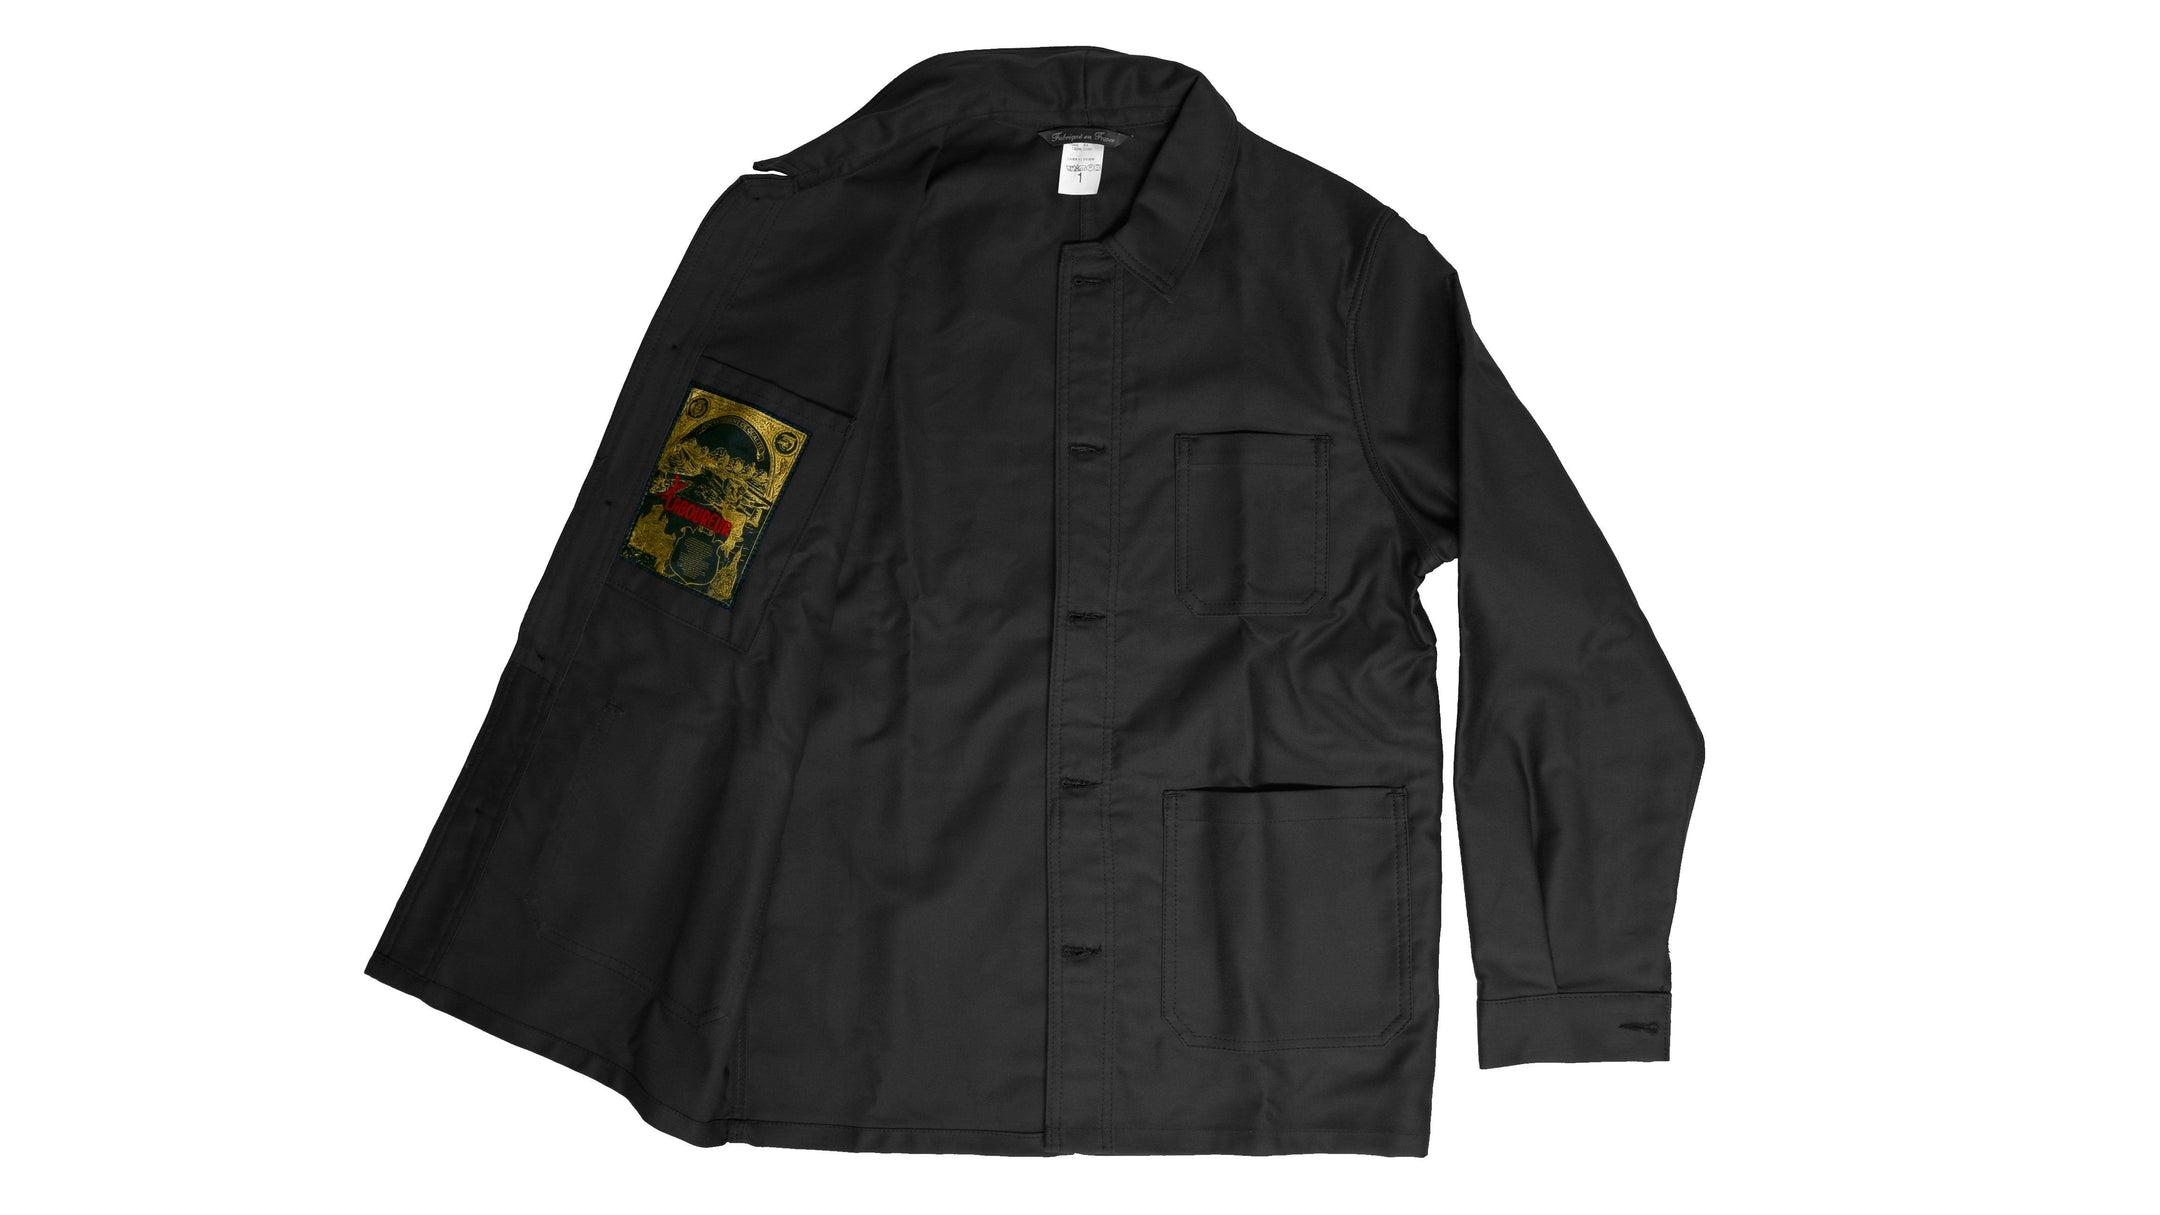 Le Laboureur Moleskin Work Jacket | Black Work Jacket Le Laboureur